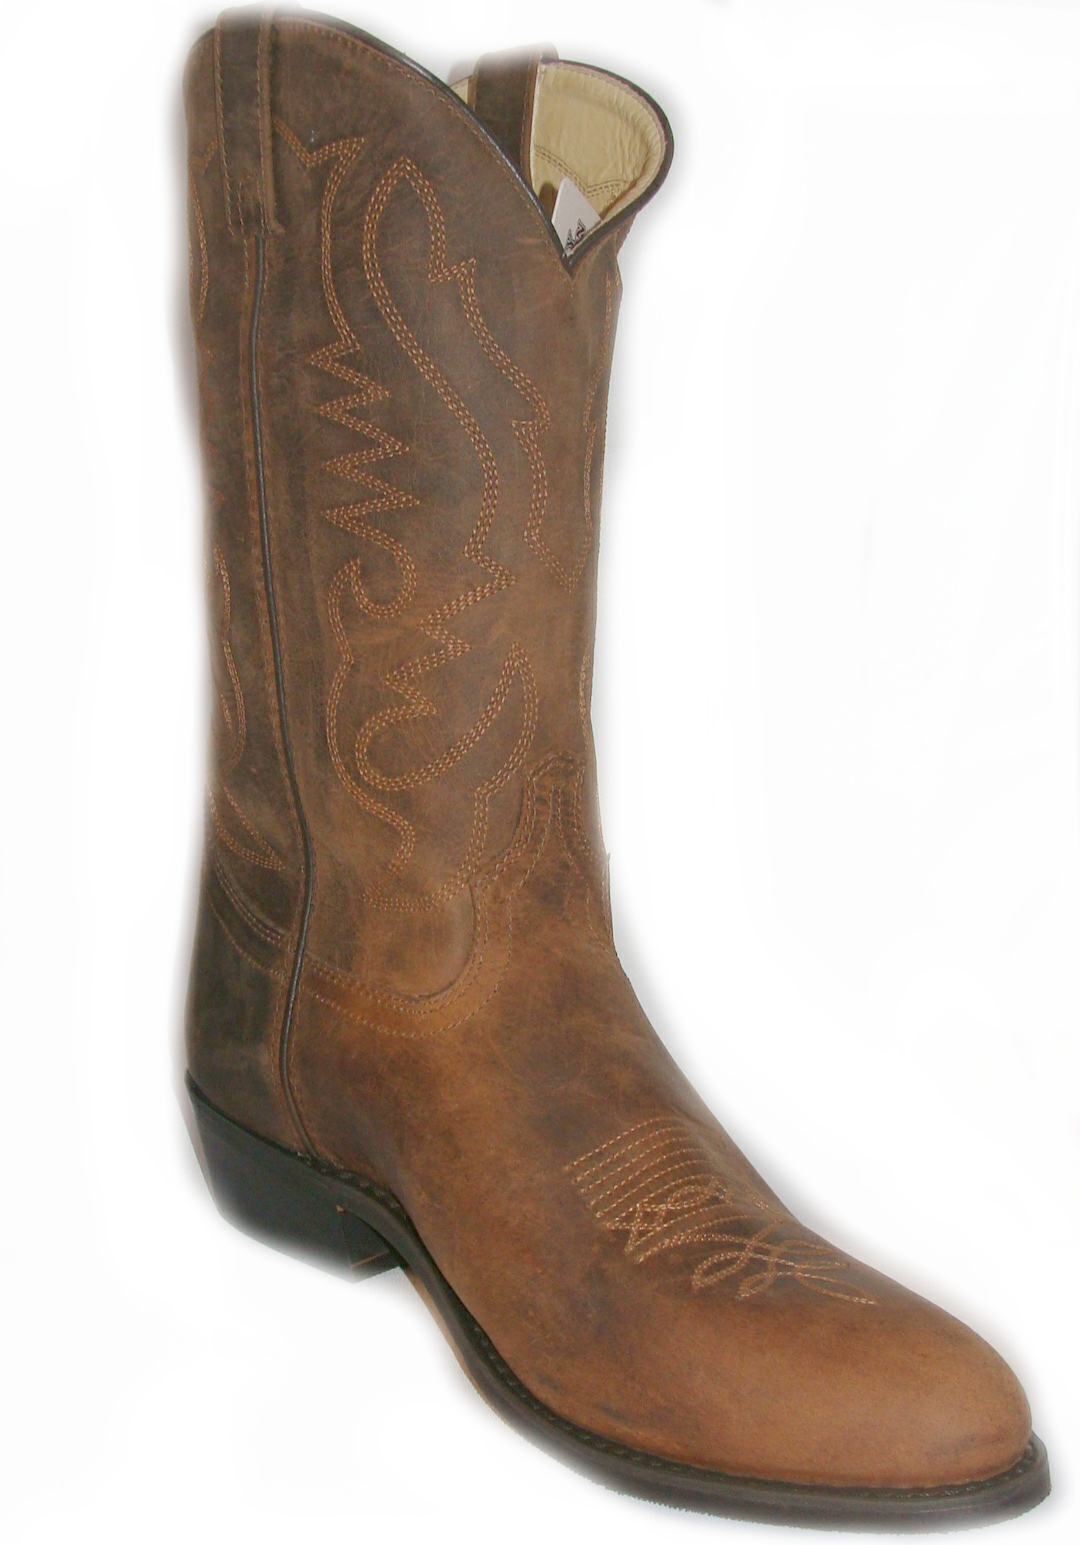 Leather Cowboy Boots RtSt5js8